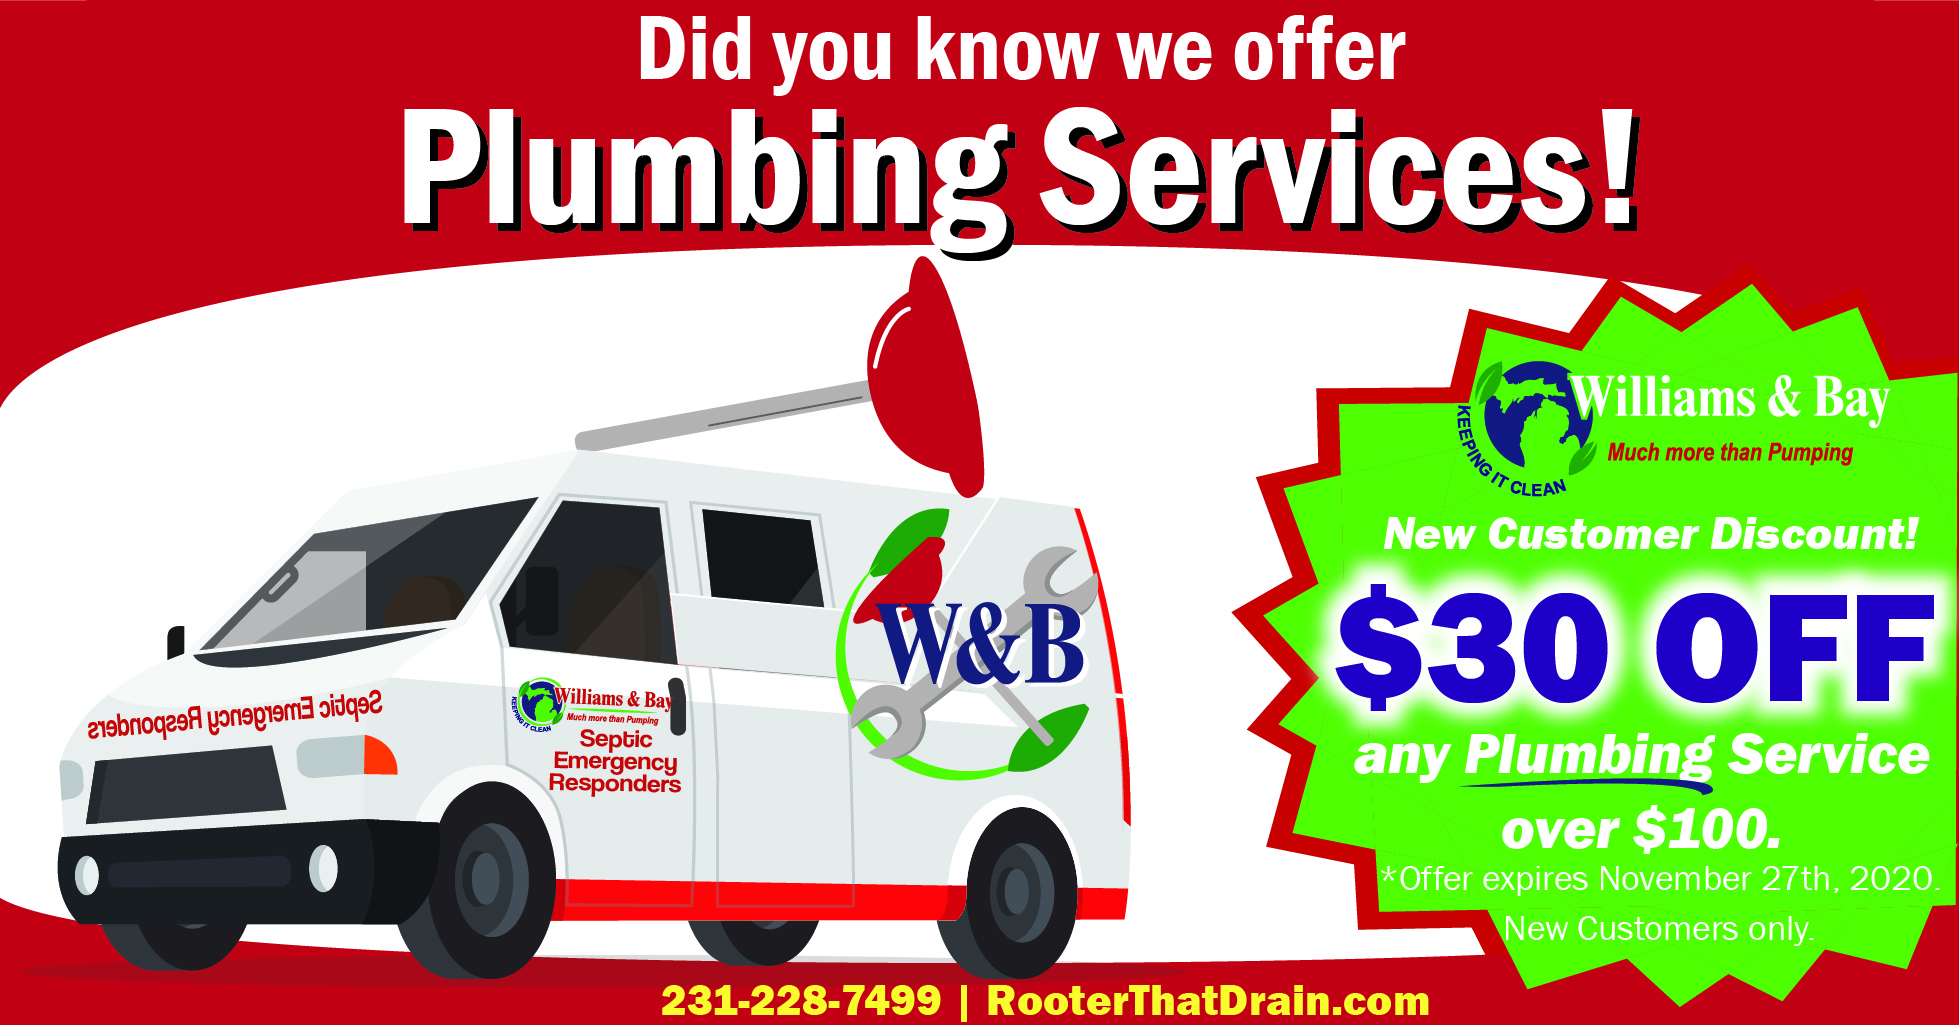 Plumbing Services Promo- Plunger - Willi